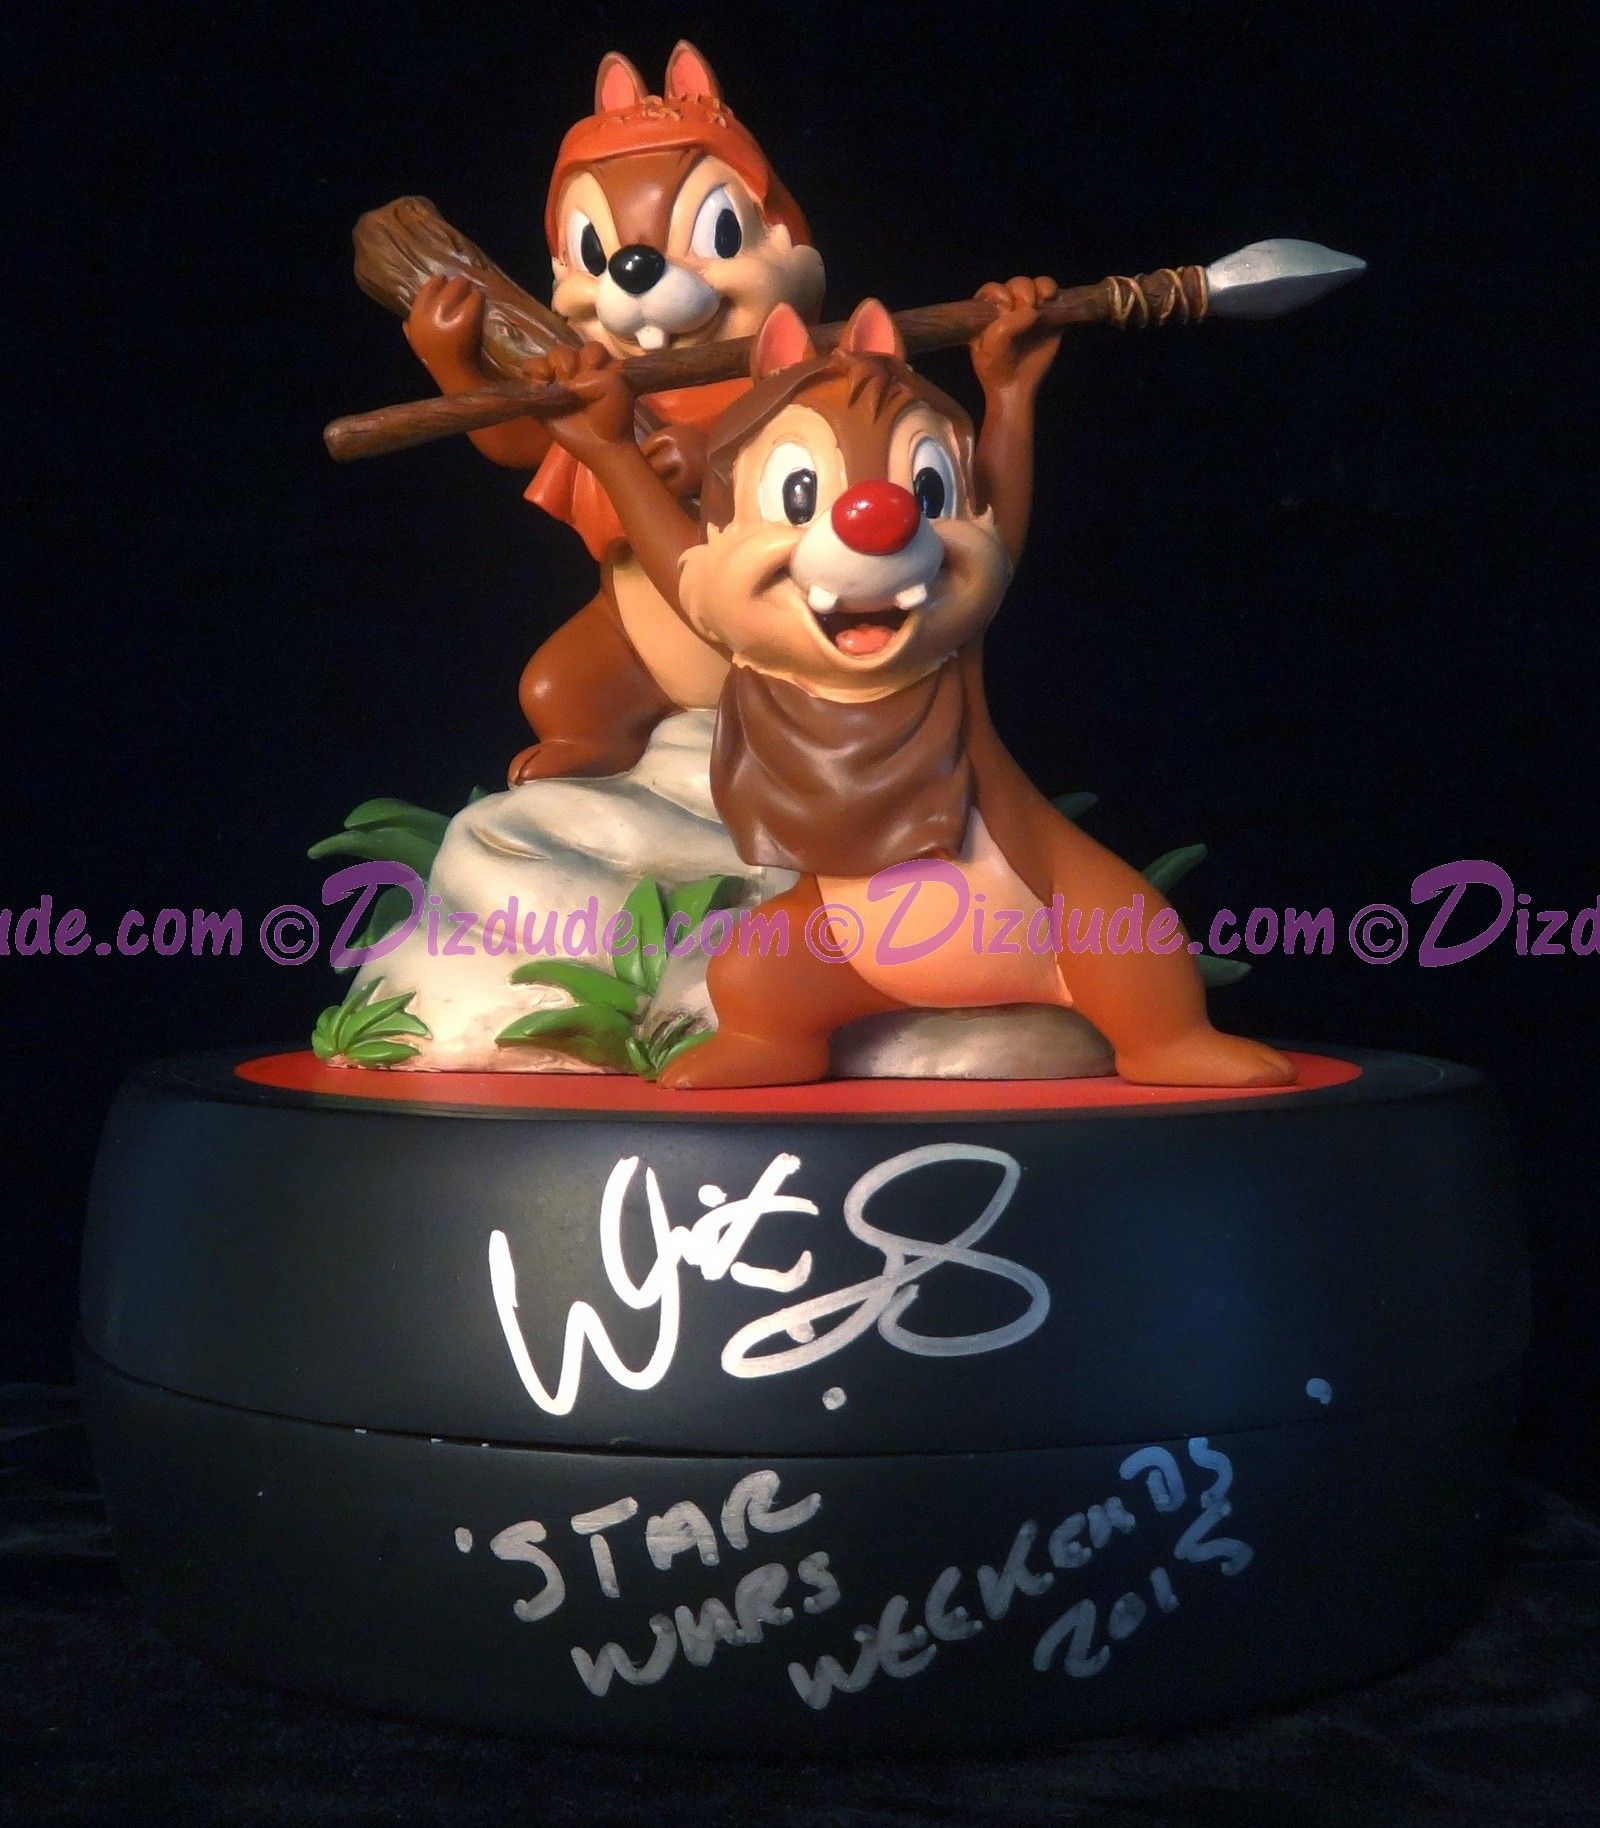 Disney Star Wars Weekends 2014 - Chip 'N' Dale as Ewoks Medium Big Figs with pin LE 1977